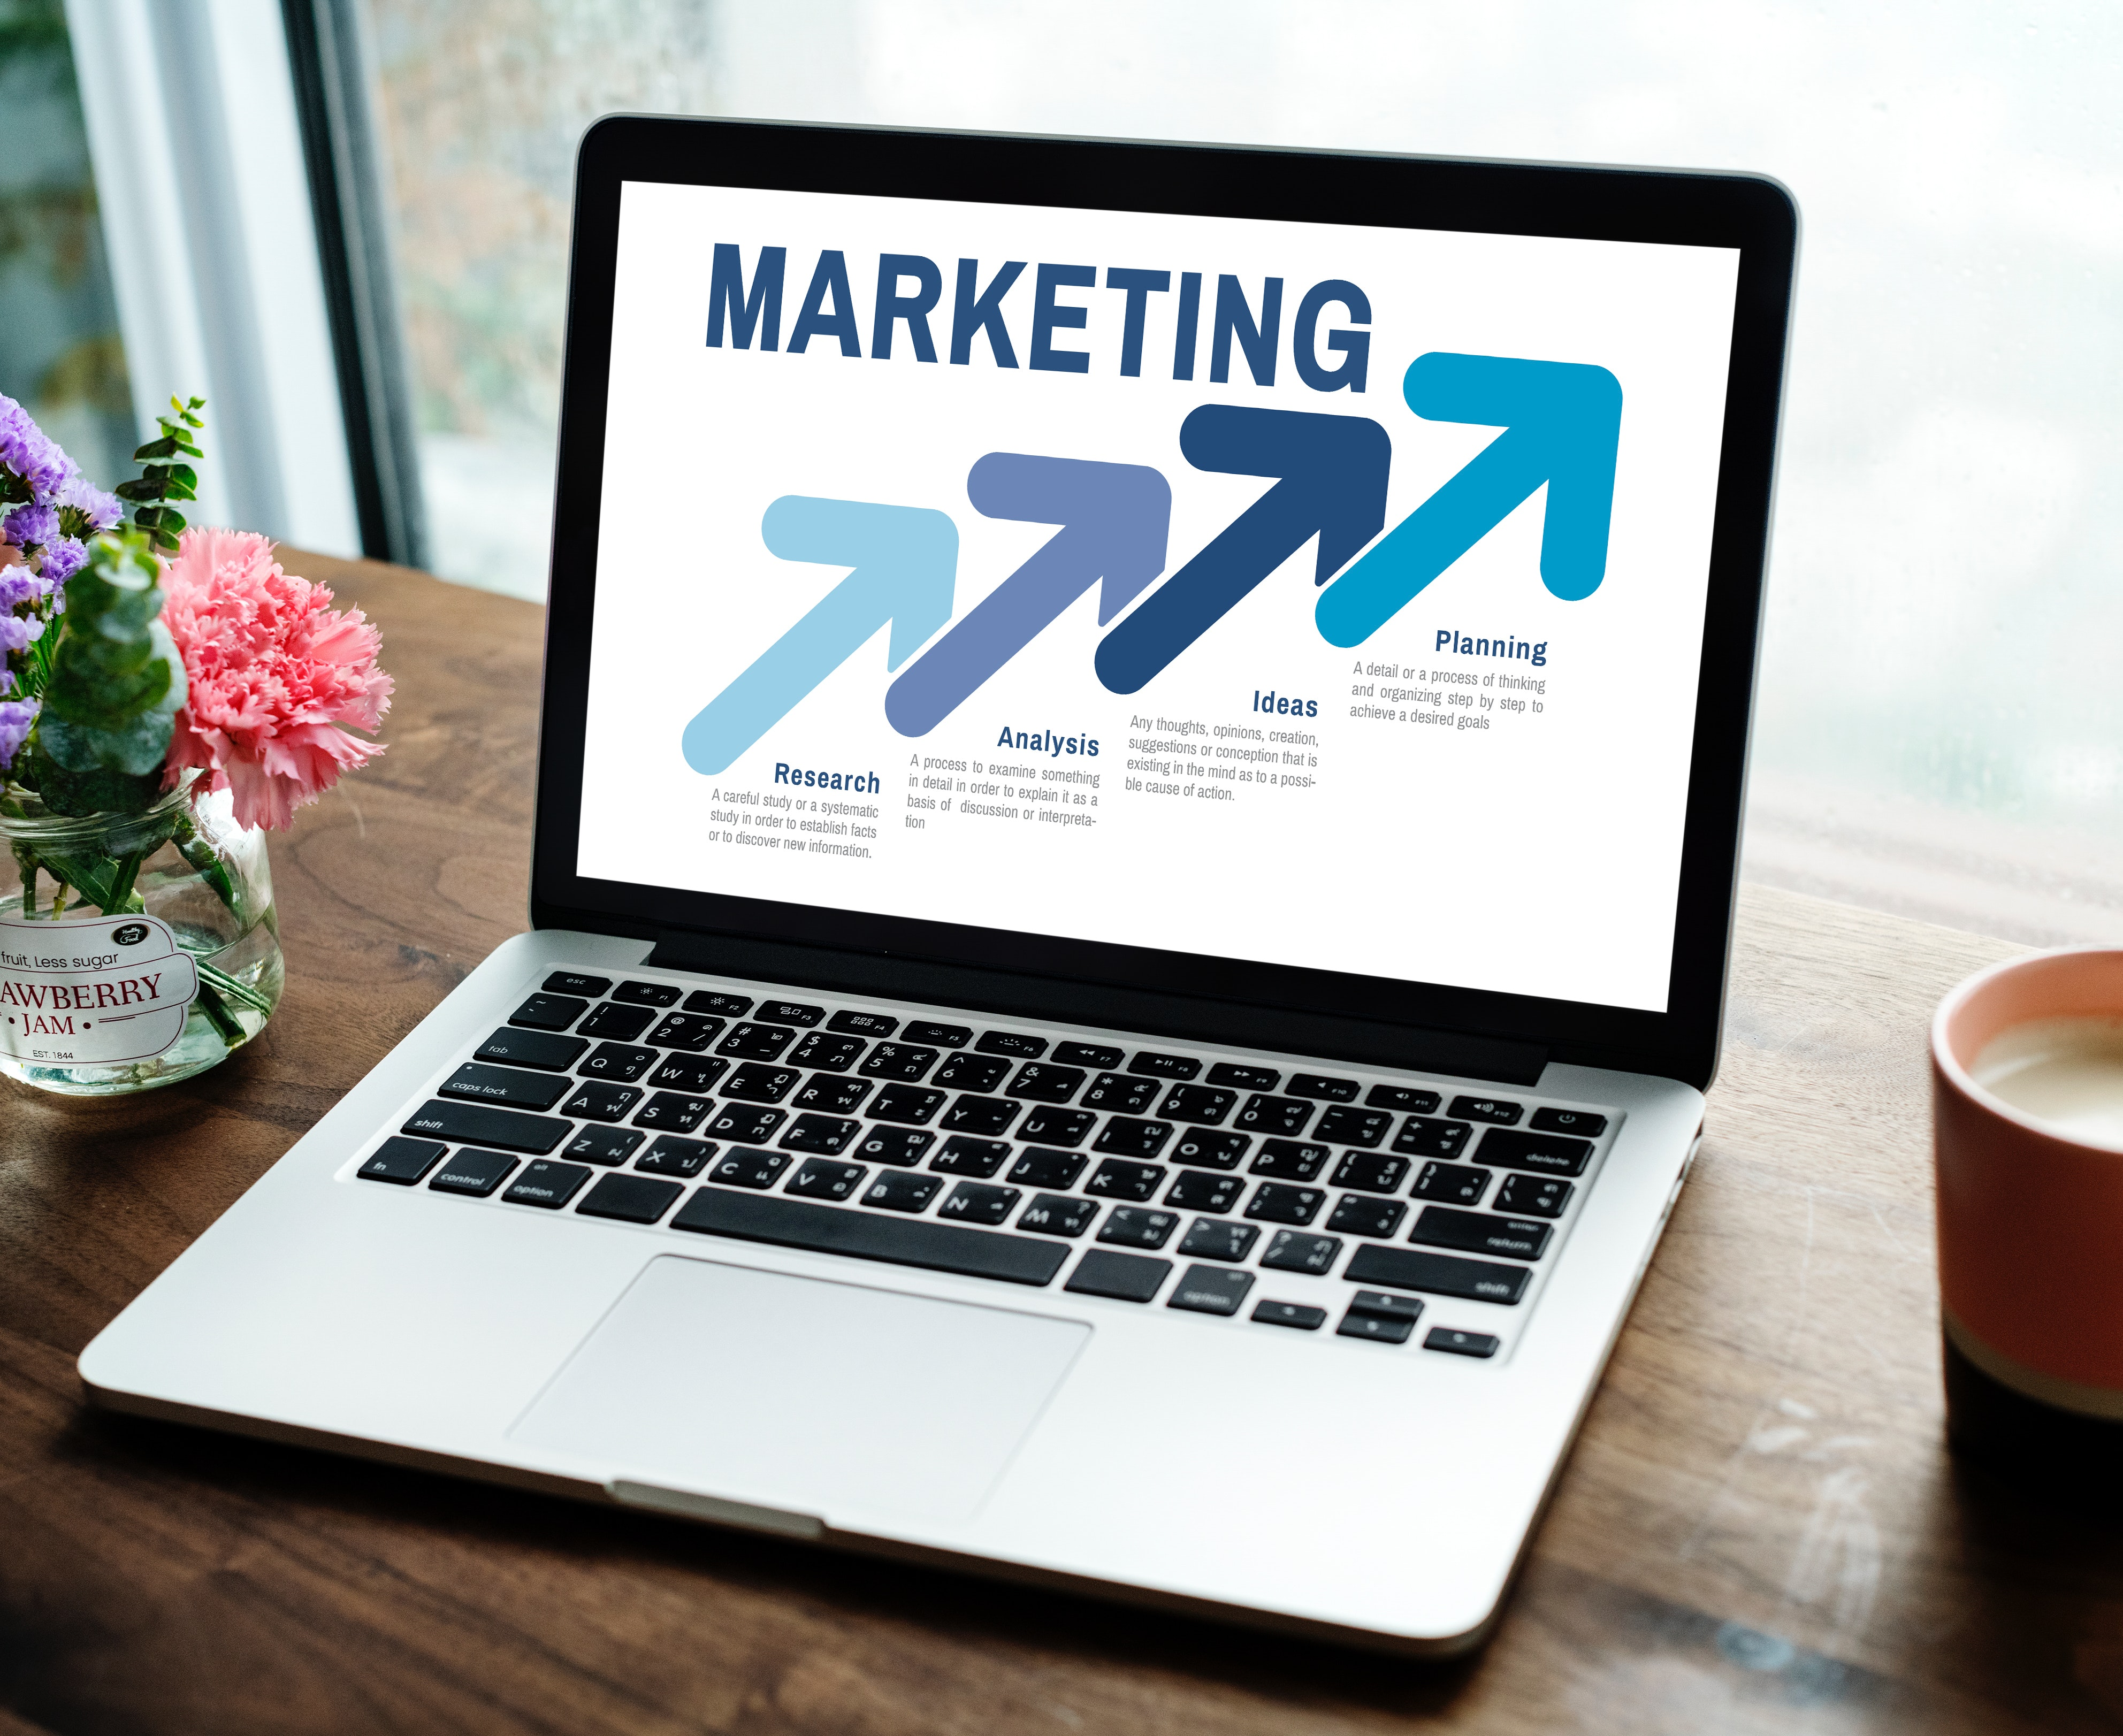 How Can Digital Marketing be used to create publicity?